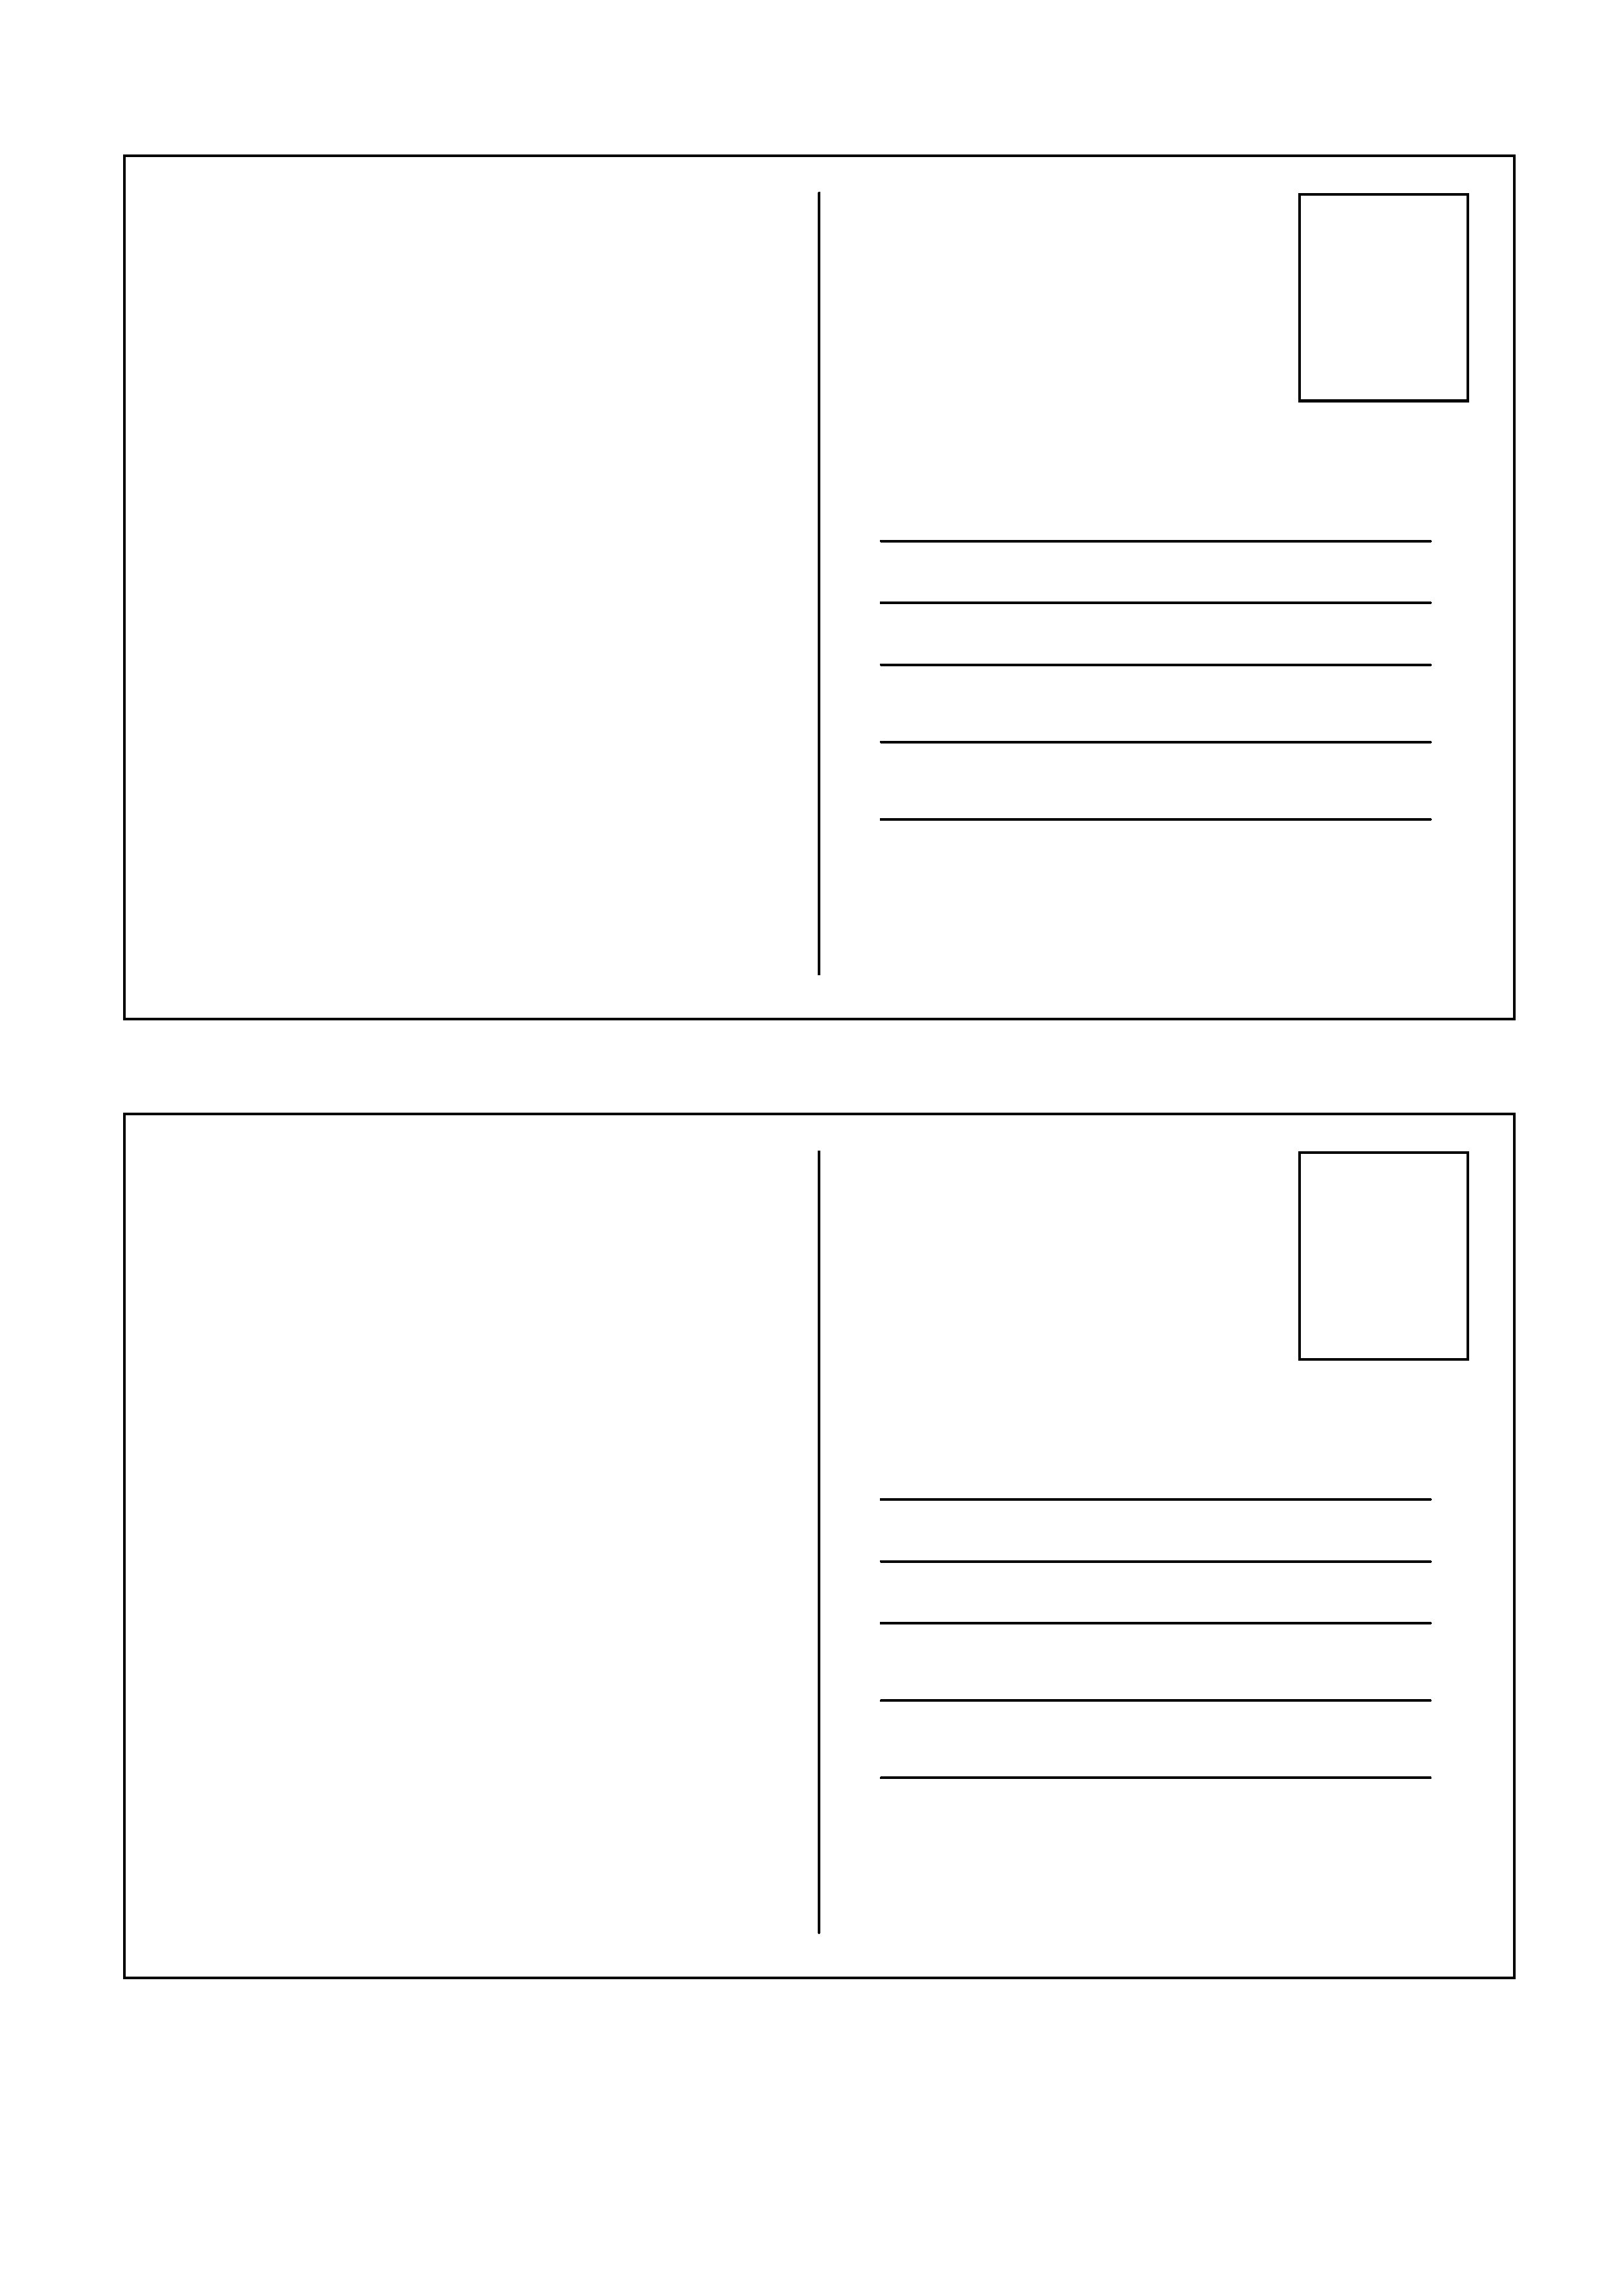 Avery 4×6 Label Template Exclusive Gallery Of Avery 4×6 Postcard Template